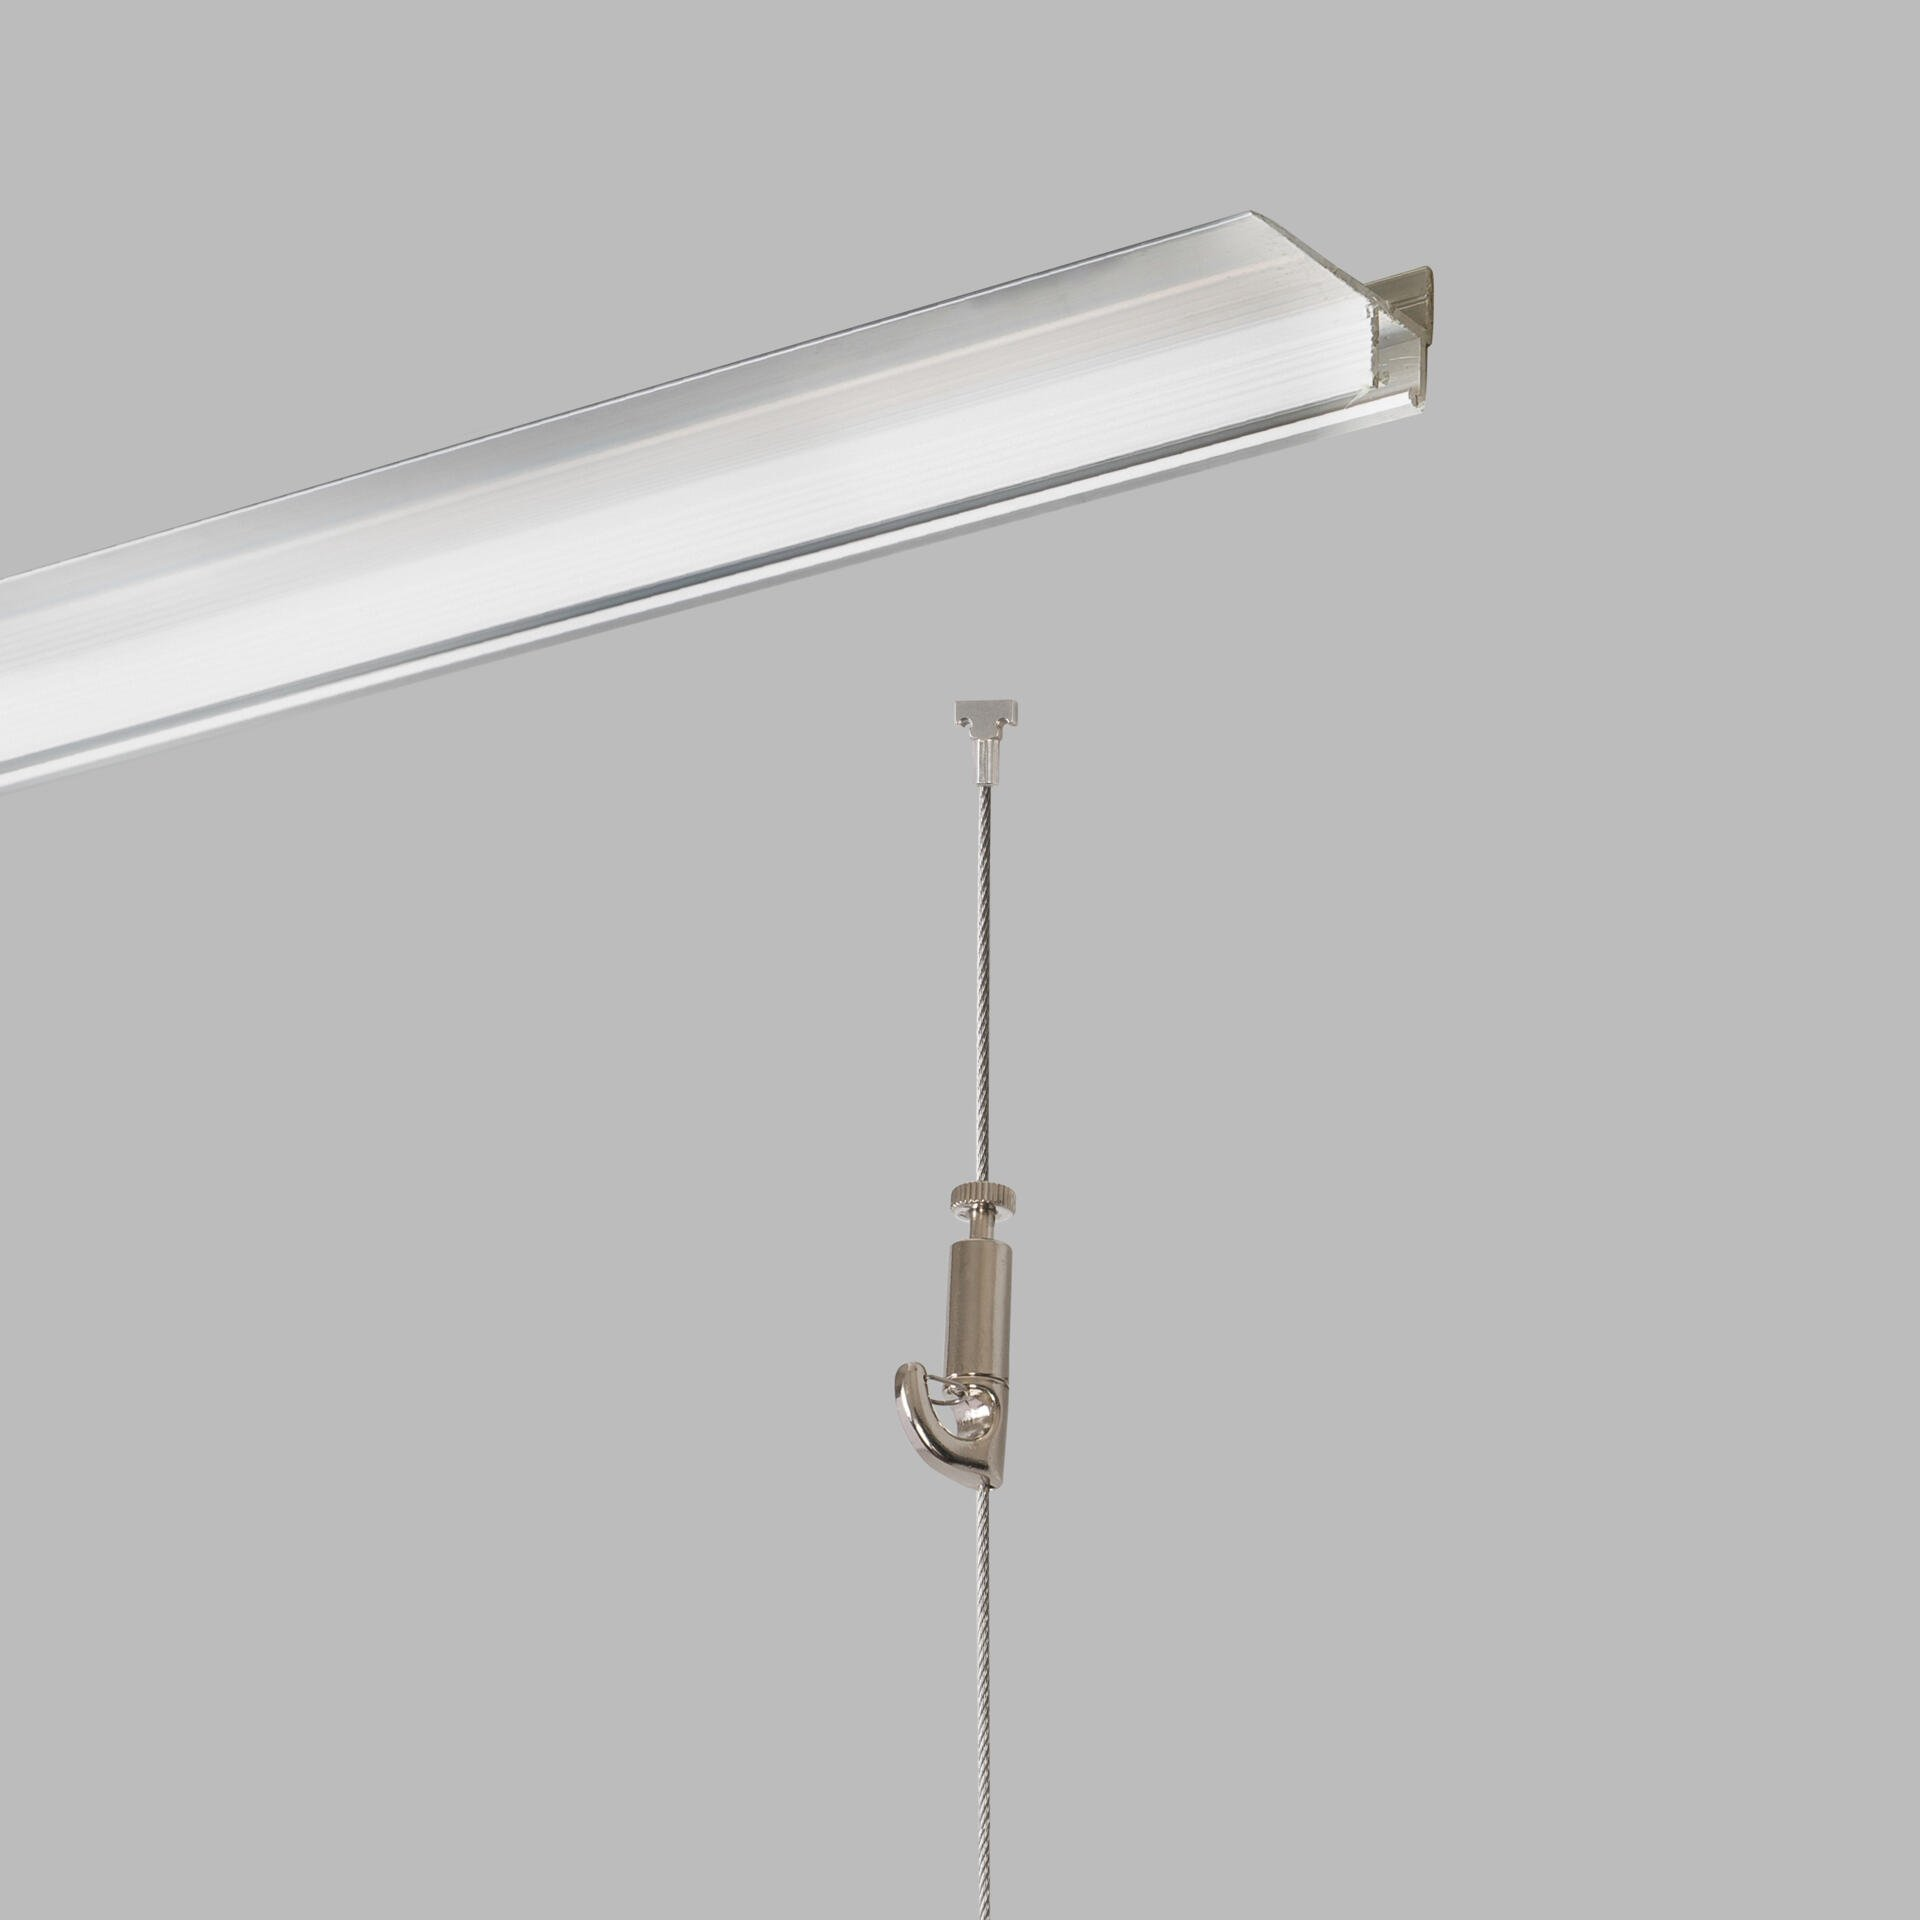 plaster rail - rendered ceiling mounted - picture fx hanging systems